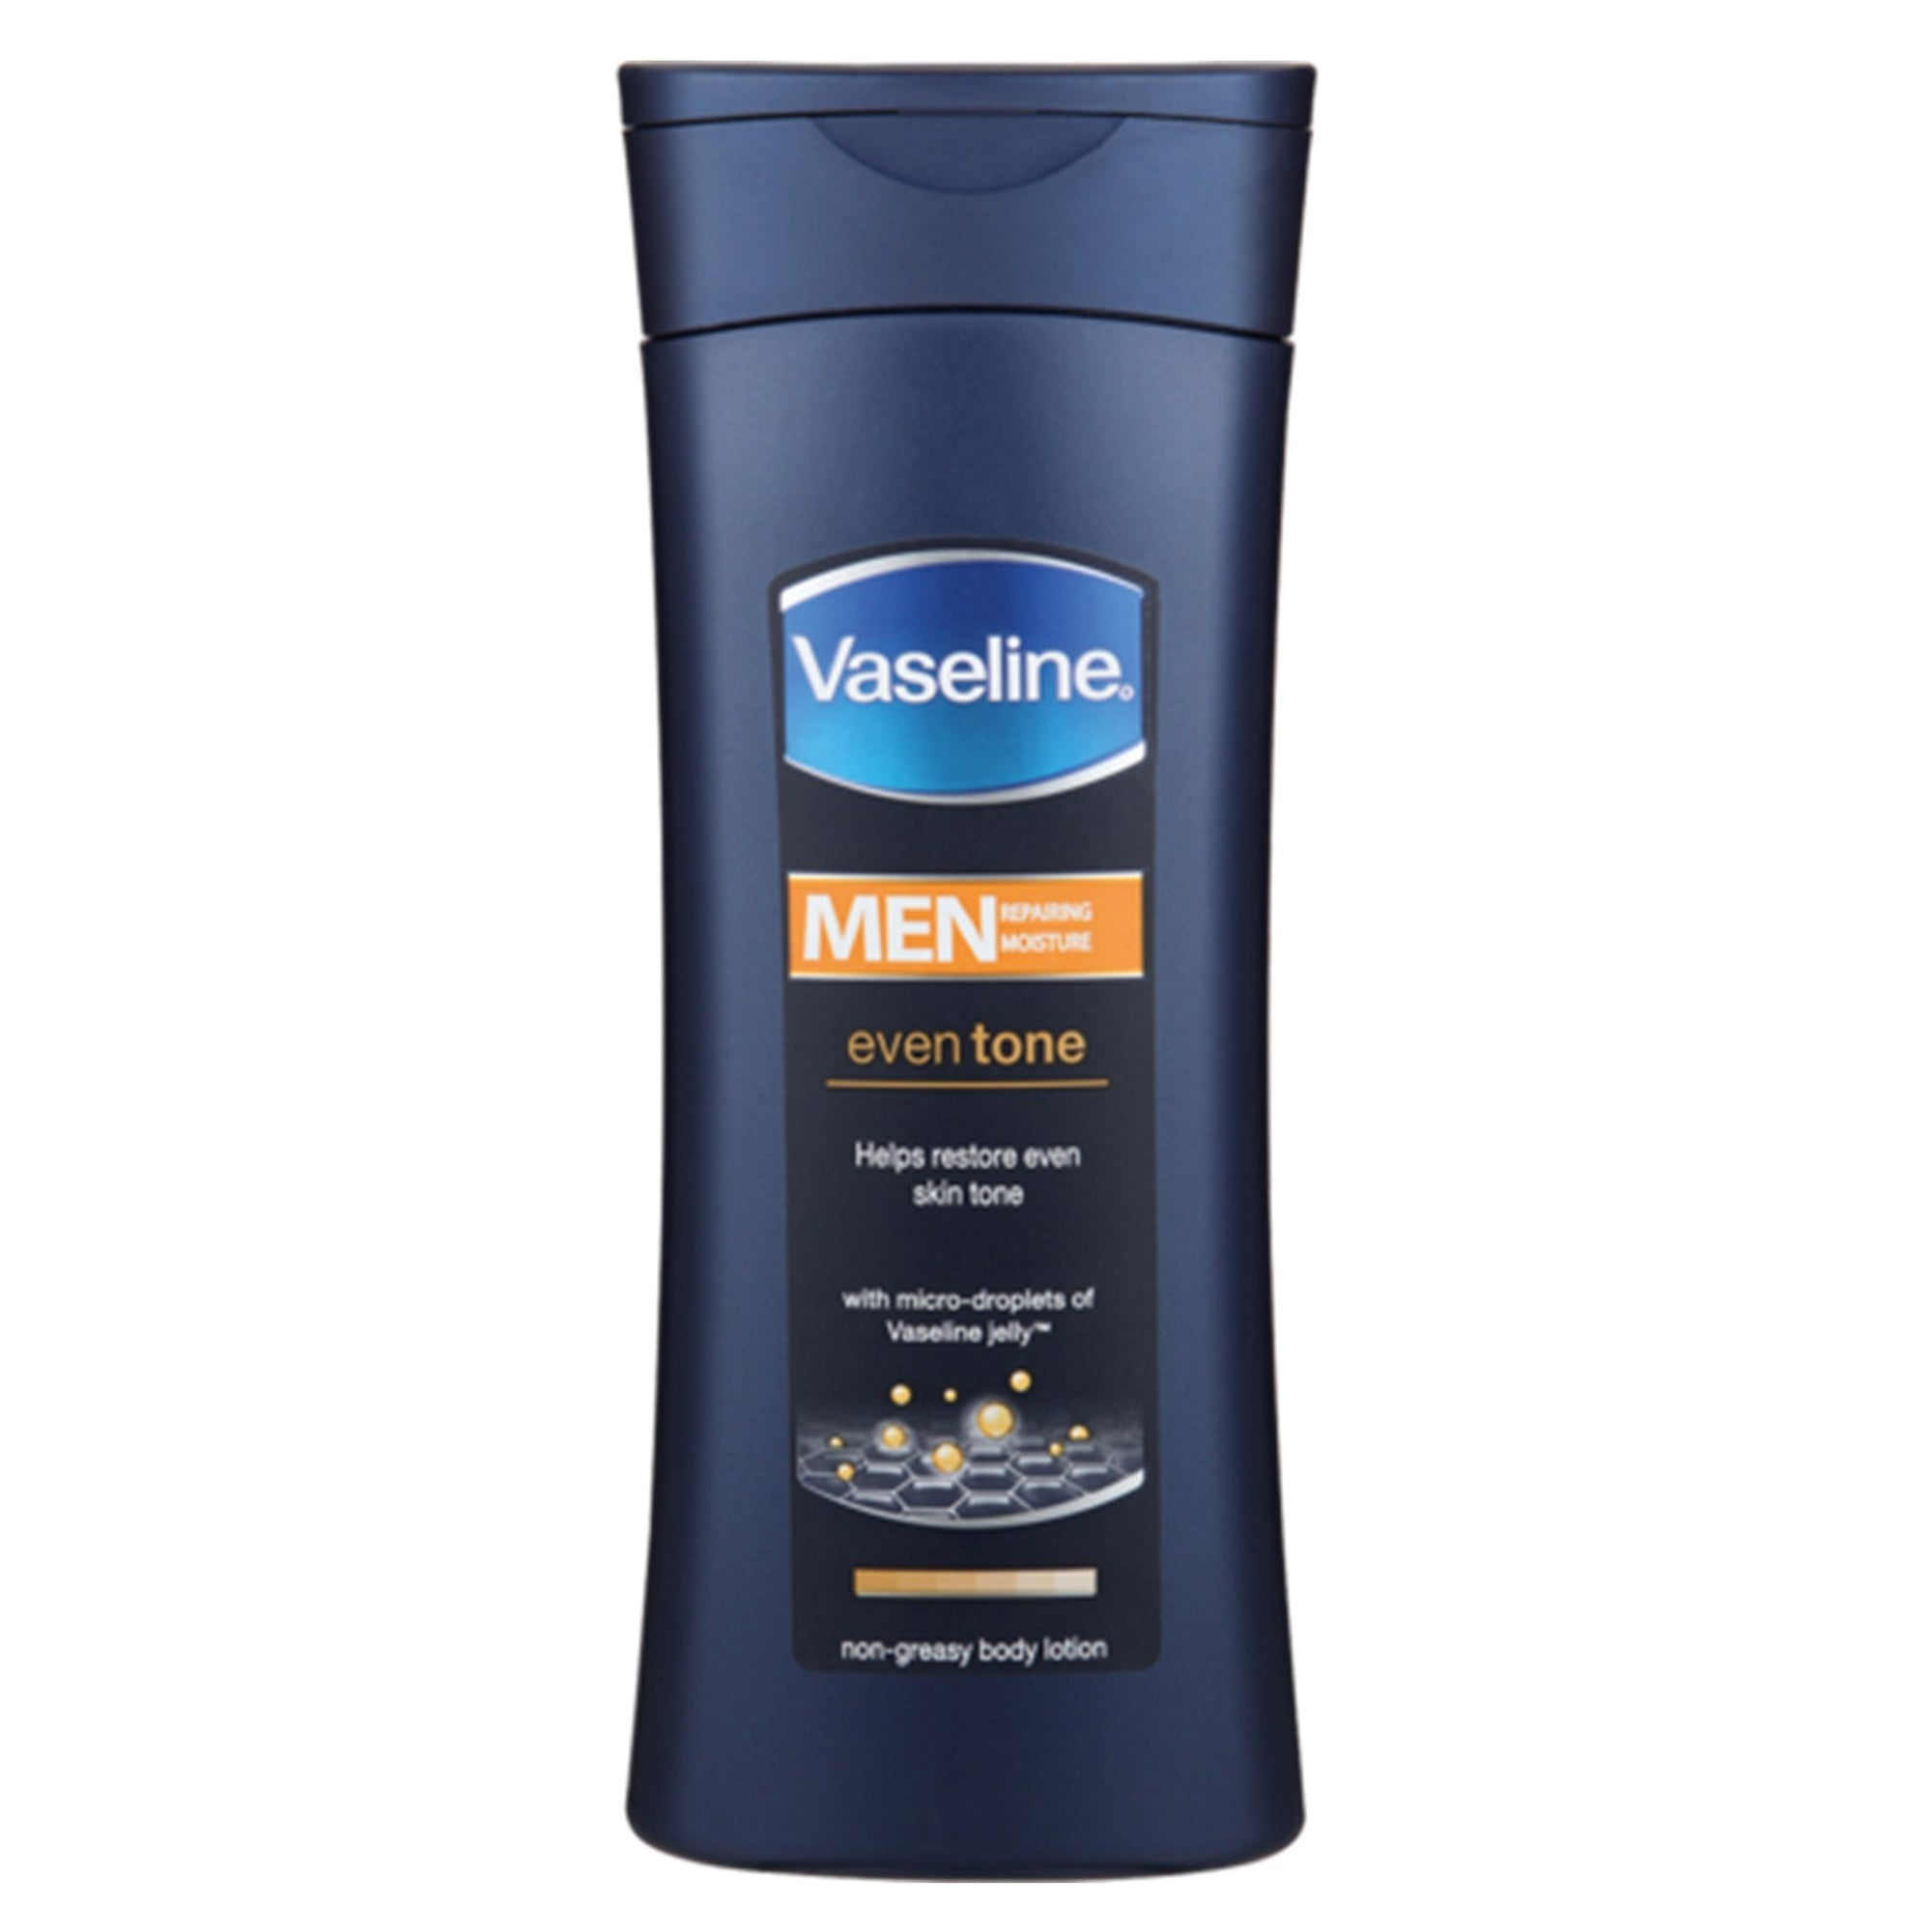 Vaseline Even Tone Mens Body Lotion 400ml